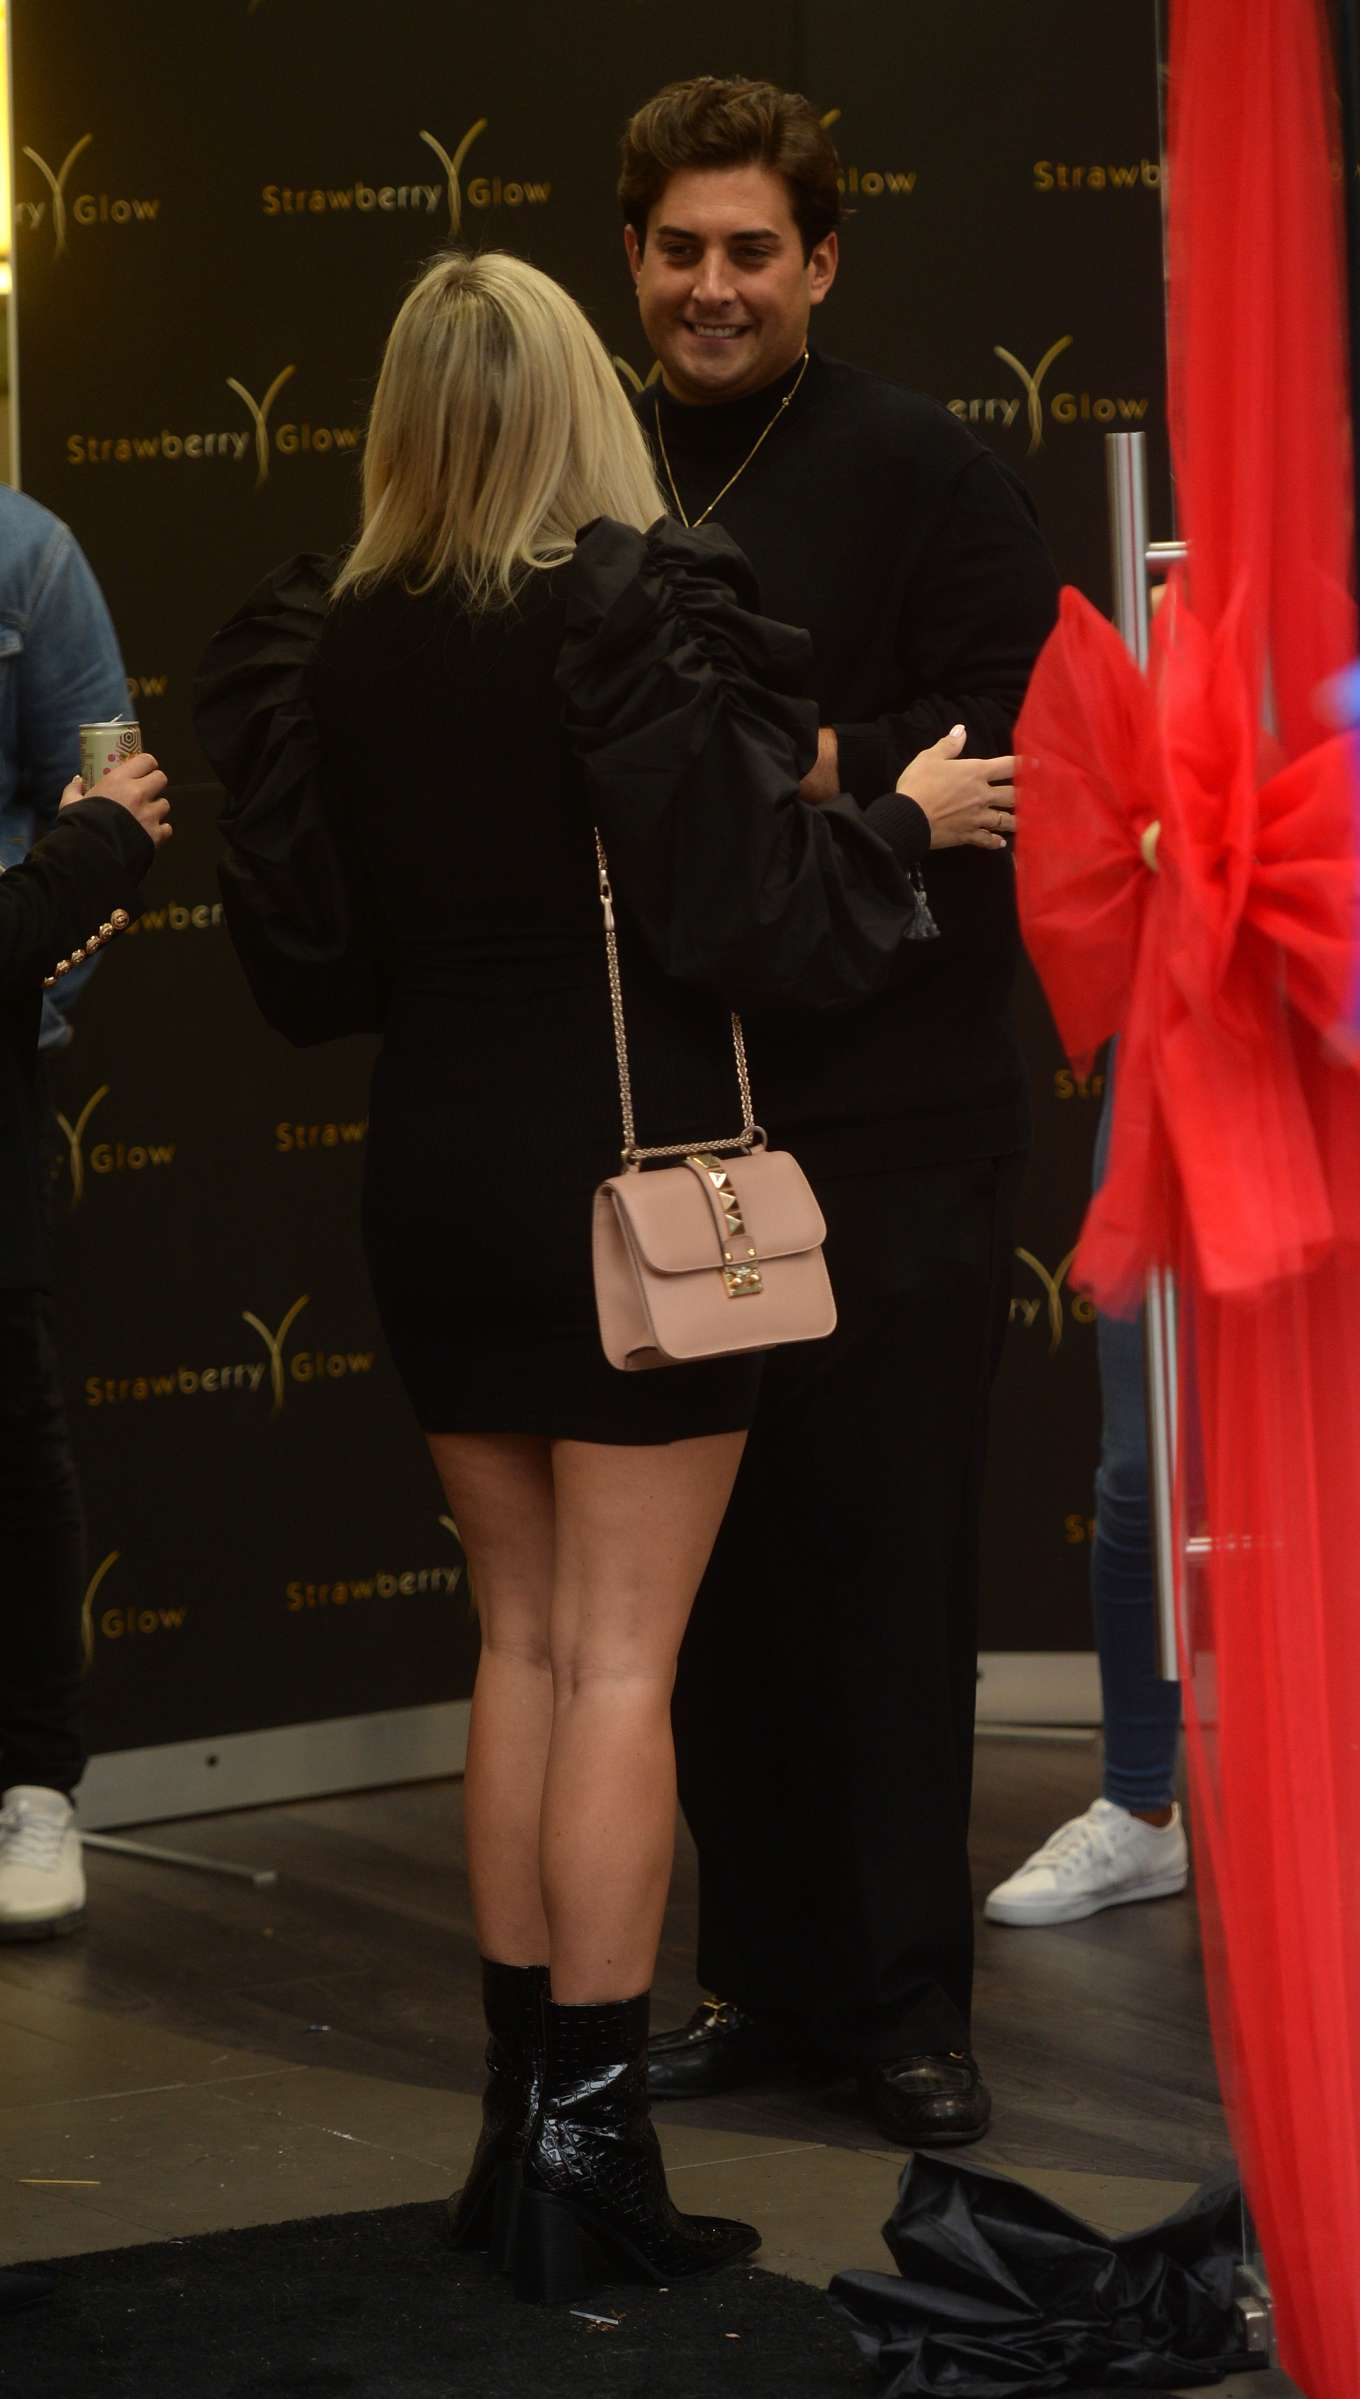 Amber Turner 2019 : Amber Turner – Arrives at Strawberry Glow Launch Party-05